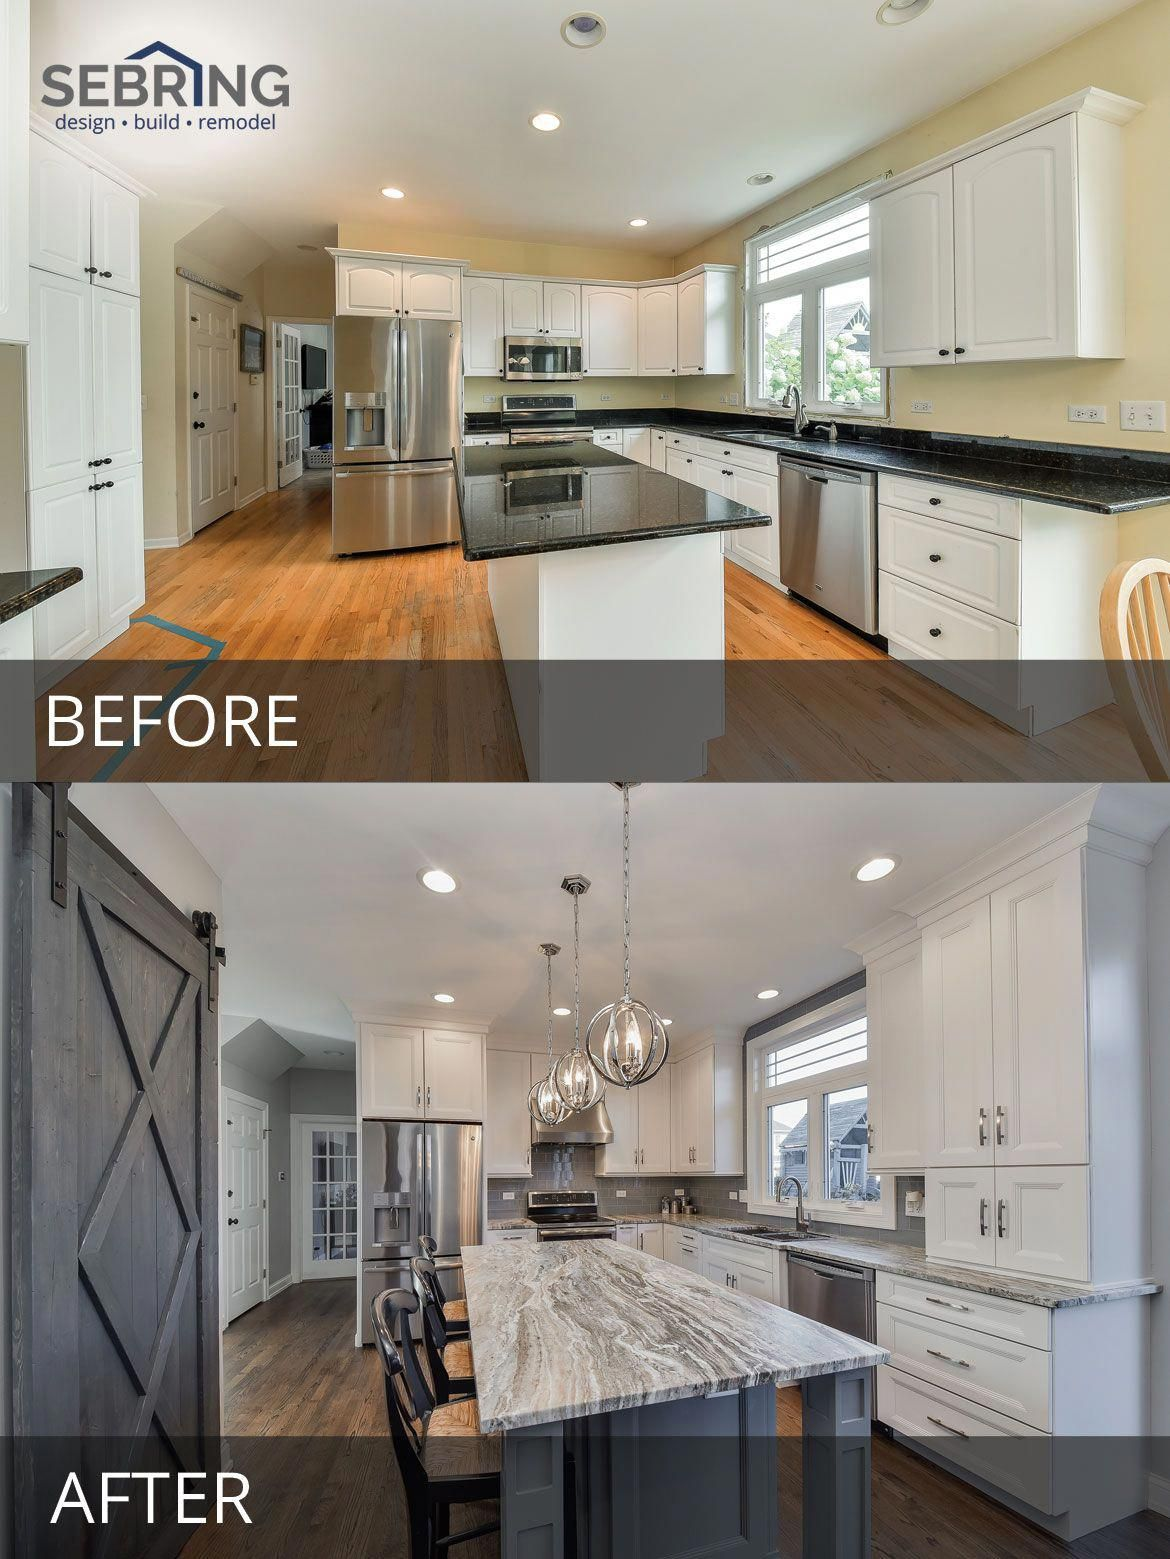 1960s Kitchen Remodel Before After: 's Naperville Kitchen Remodel Pictures, Featuring White